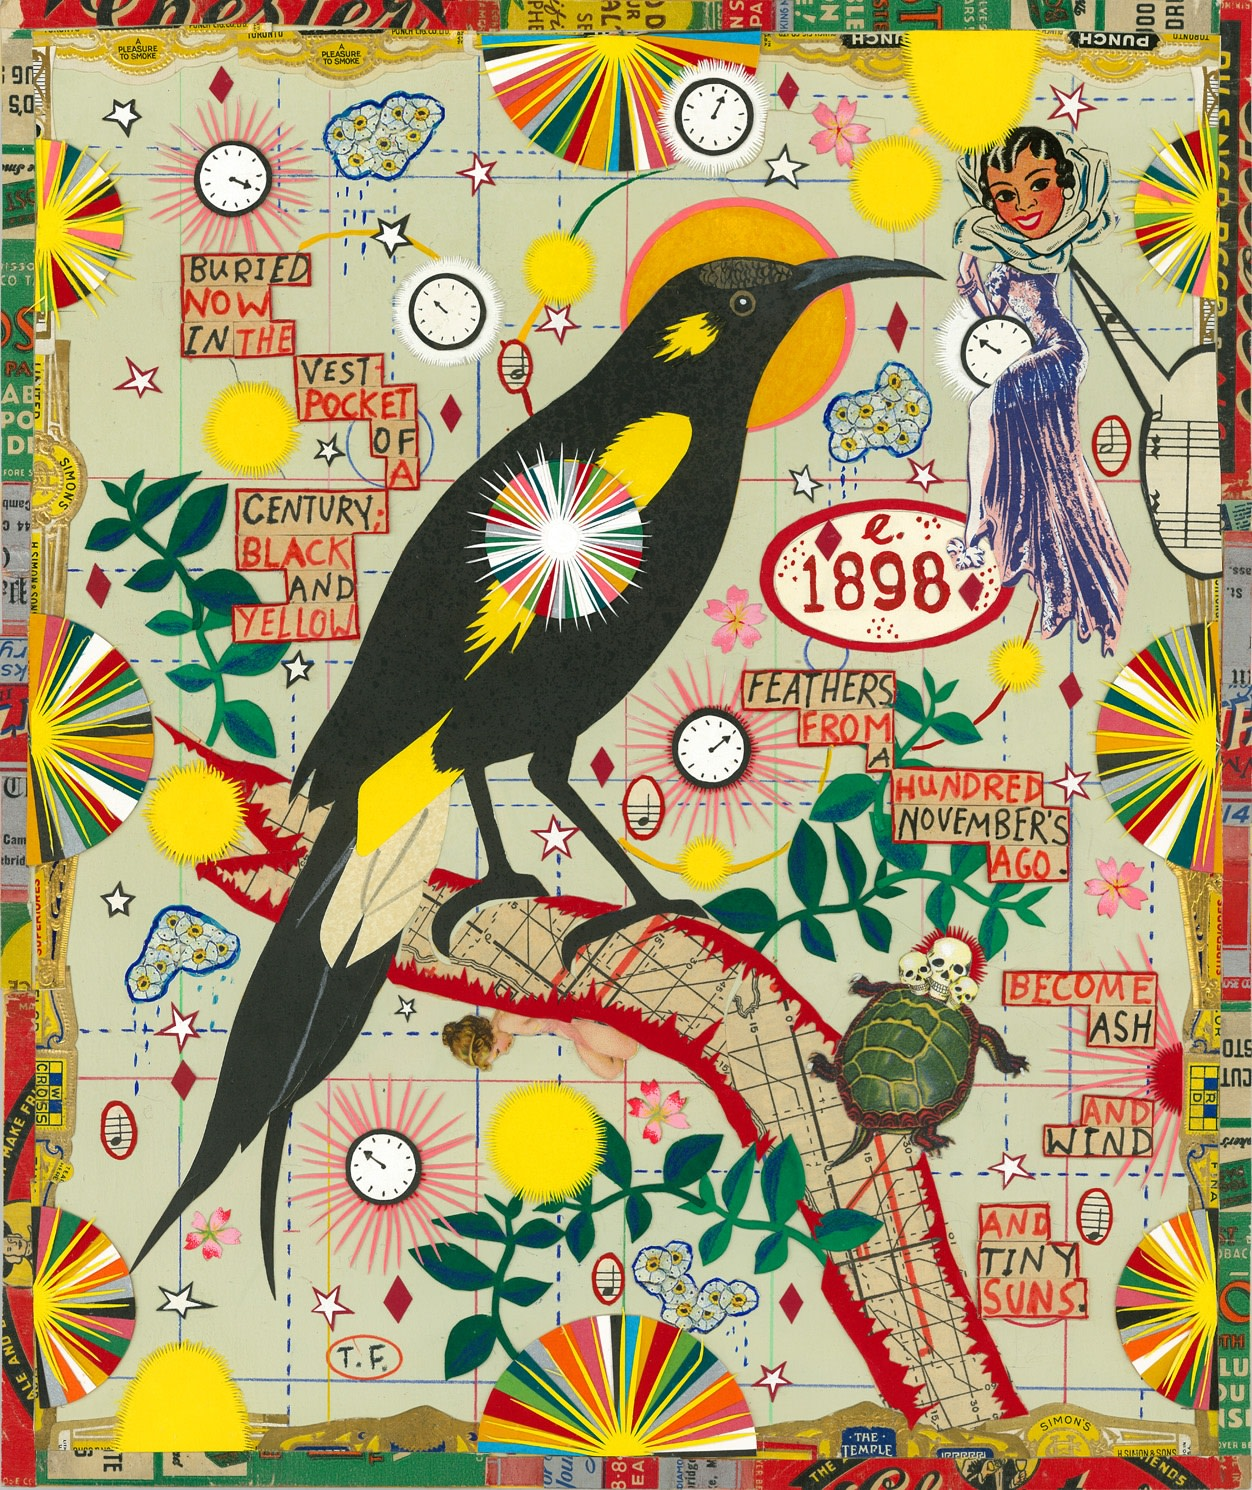 """<span class=""""link fancybox-details-link""""><a href=""""/exhibitions/25/works/artworks755/"""">View Detail Page</a></span><div class=""""artist""""><strong>Tony Fitzpatrick</strong></div><div class=""""title""""><em>Bird of the Century</em>, 2016</div><div class=""""medium"""">Unique Collage</div><div class=""""dimensions"""">(image) 30.2 x 25.4 cm<br>11 7/8 x 10 in.</div>"""